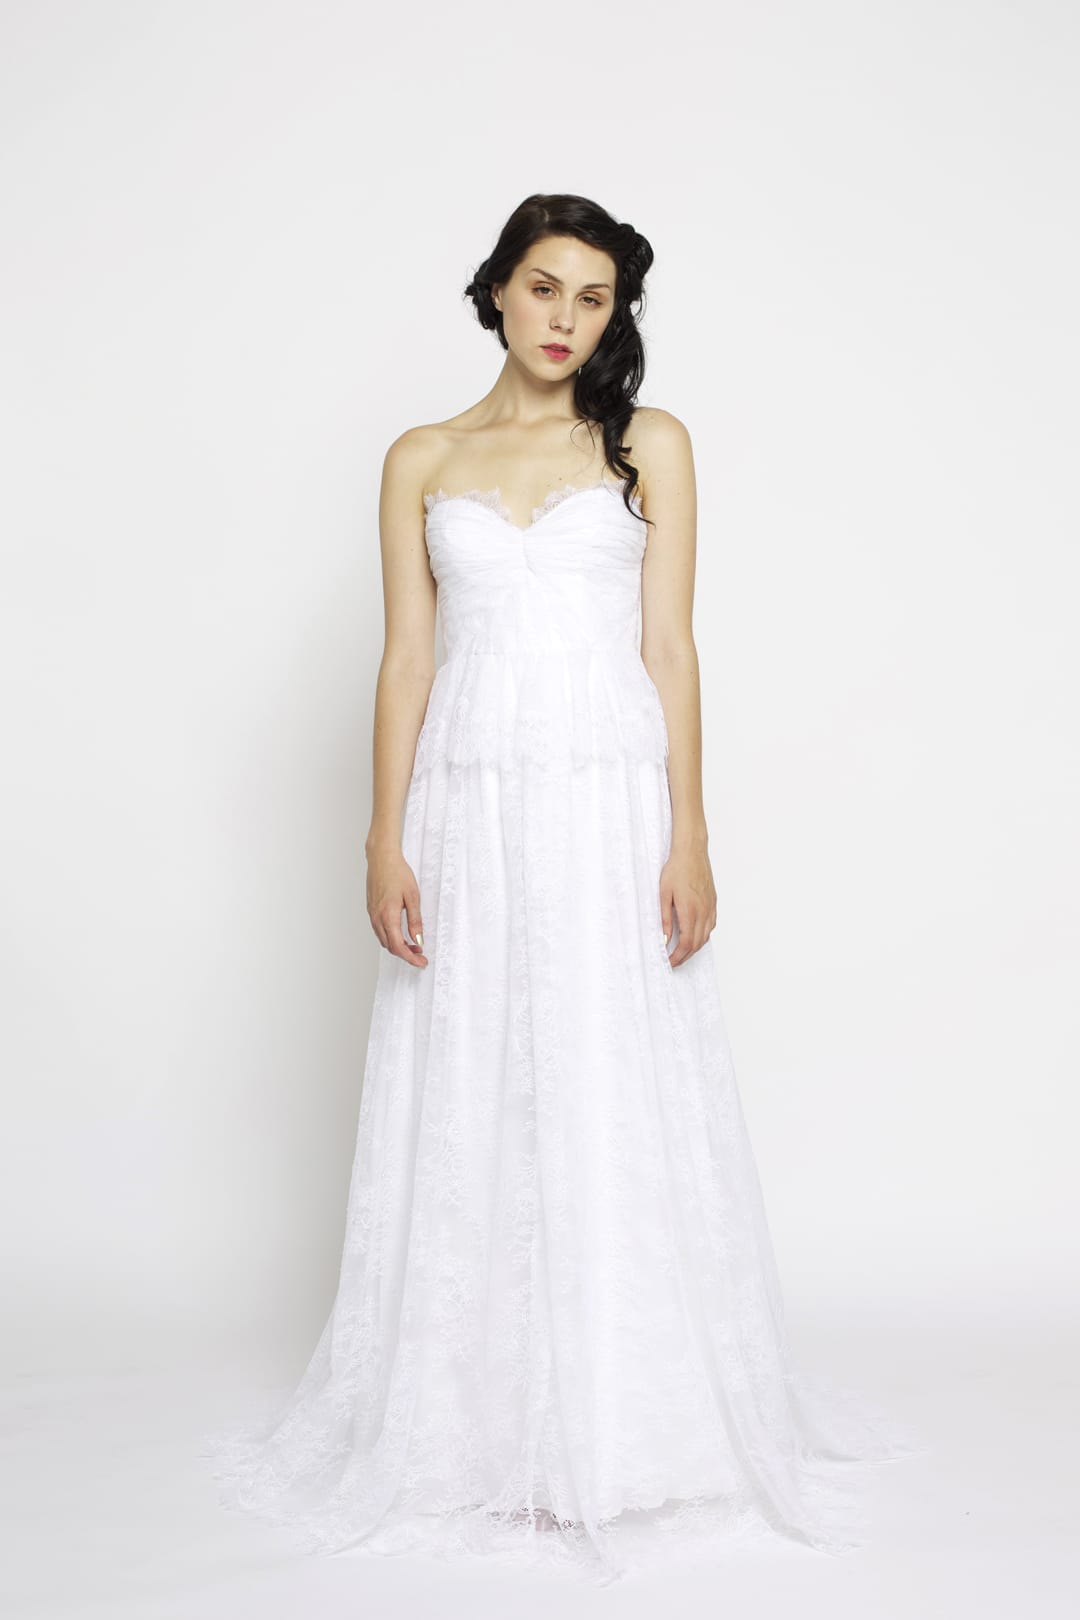 Claire la faye sell my wedding dress online sell my for Buy designer wedding dresses online